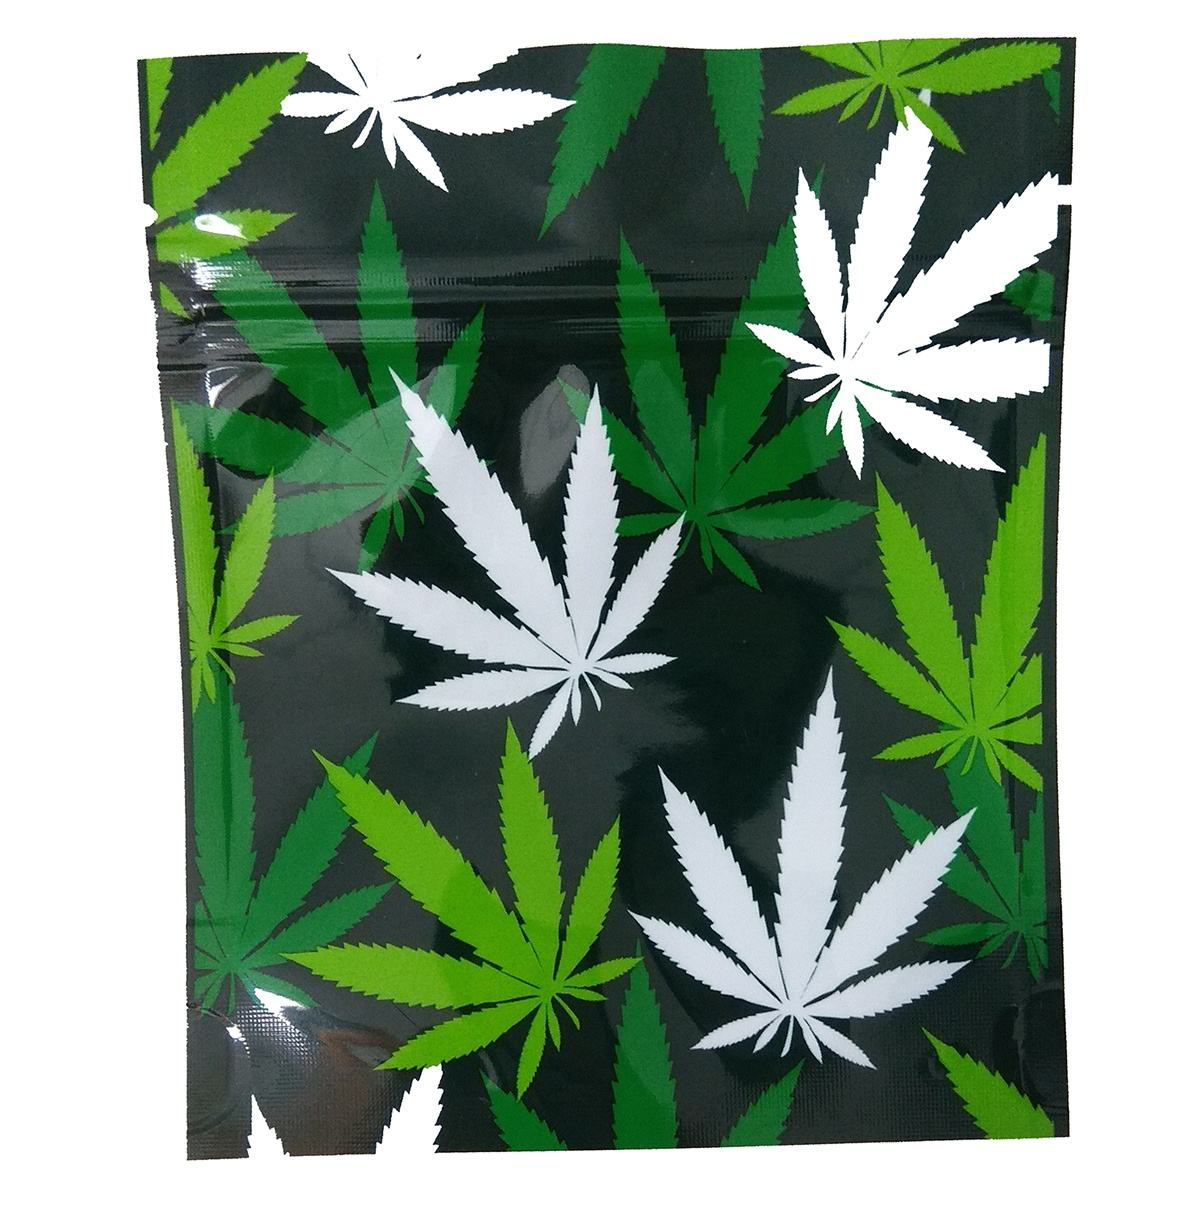 A Small MOQ 500pcs Custom print Child proof Smell Proof hologram 1/8 oz 3.5 gram Mylar weed Bags weed packaging